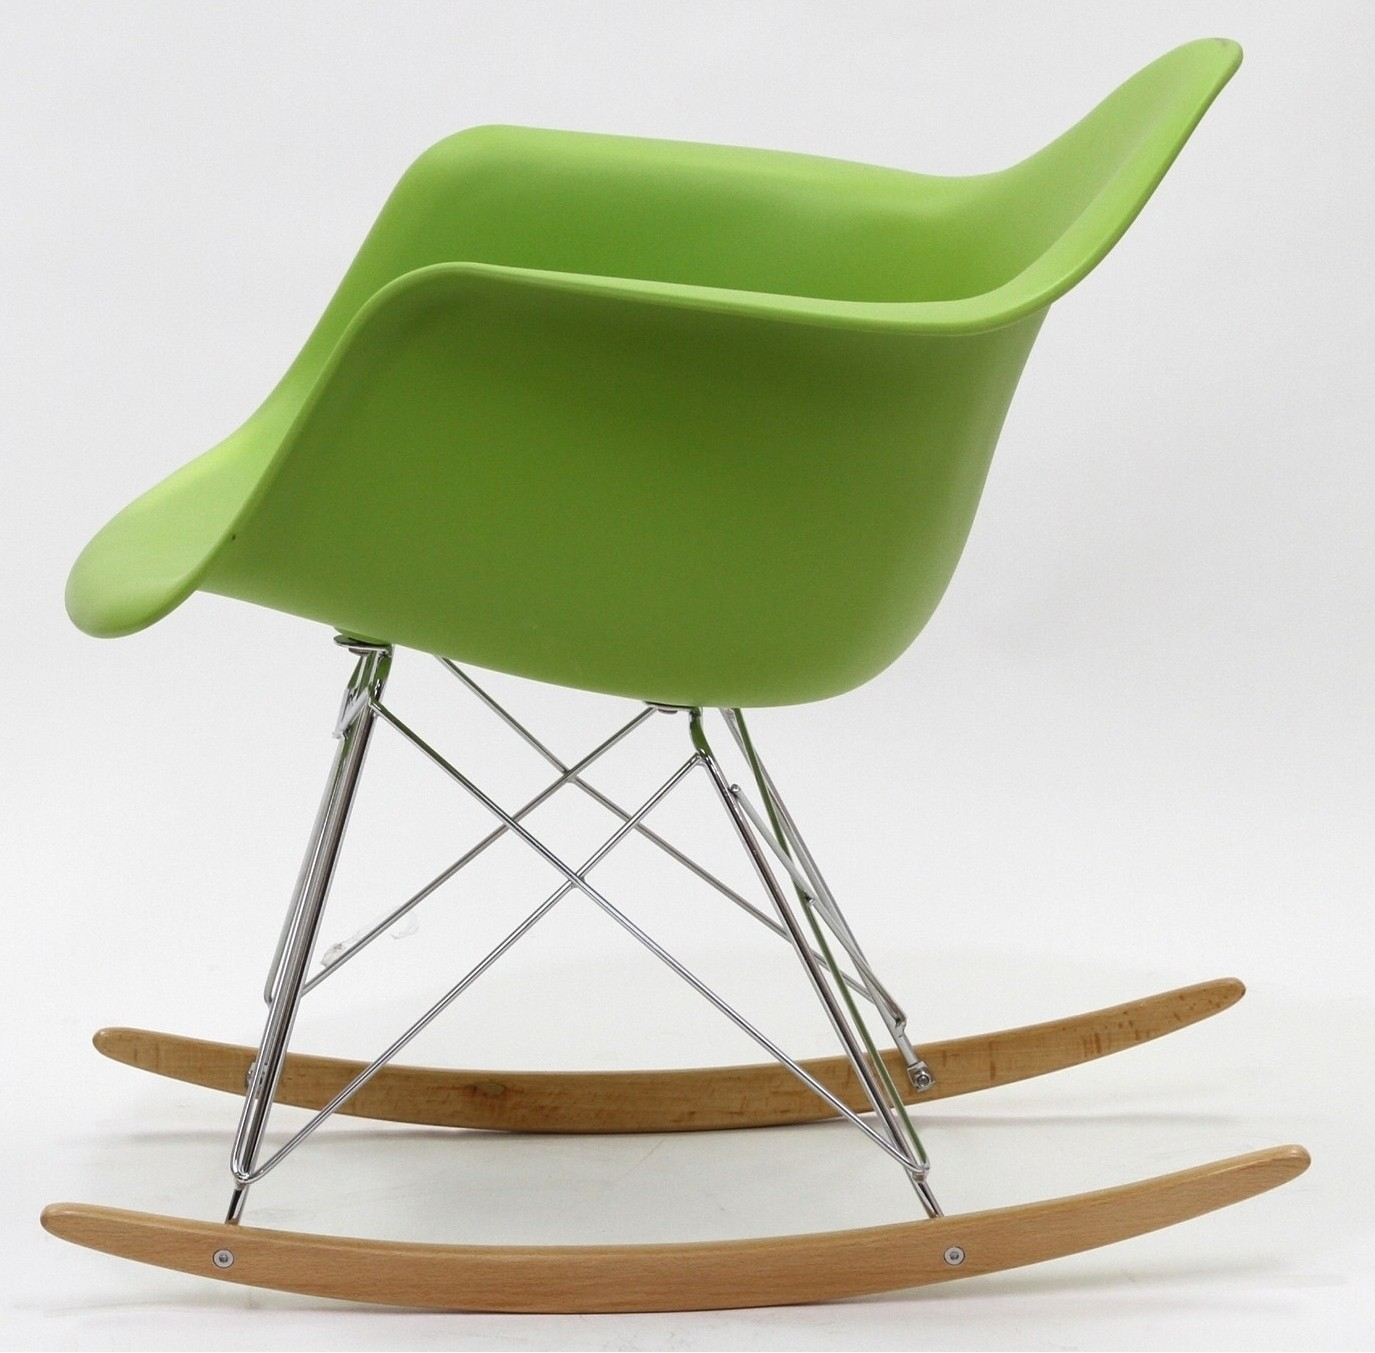 coleman rocking chair key west chairs plastic molded in green from renegade eei